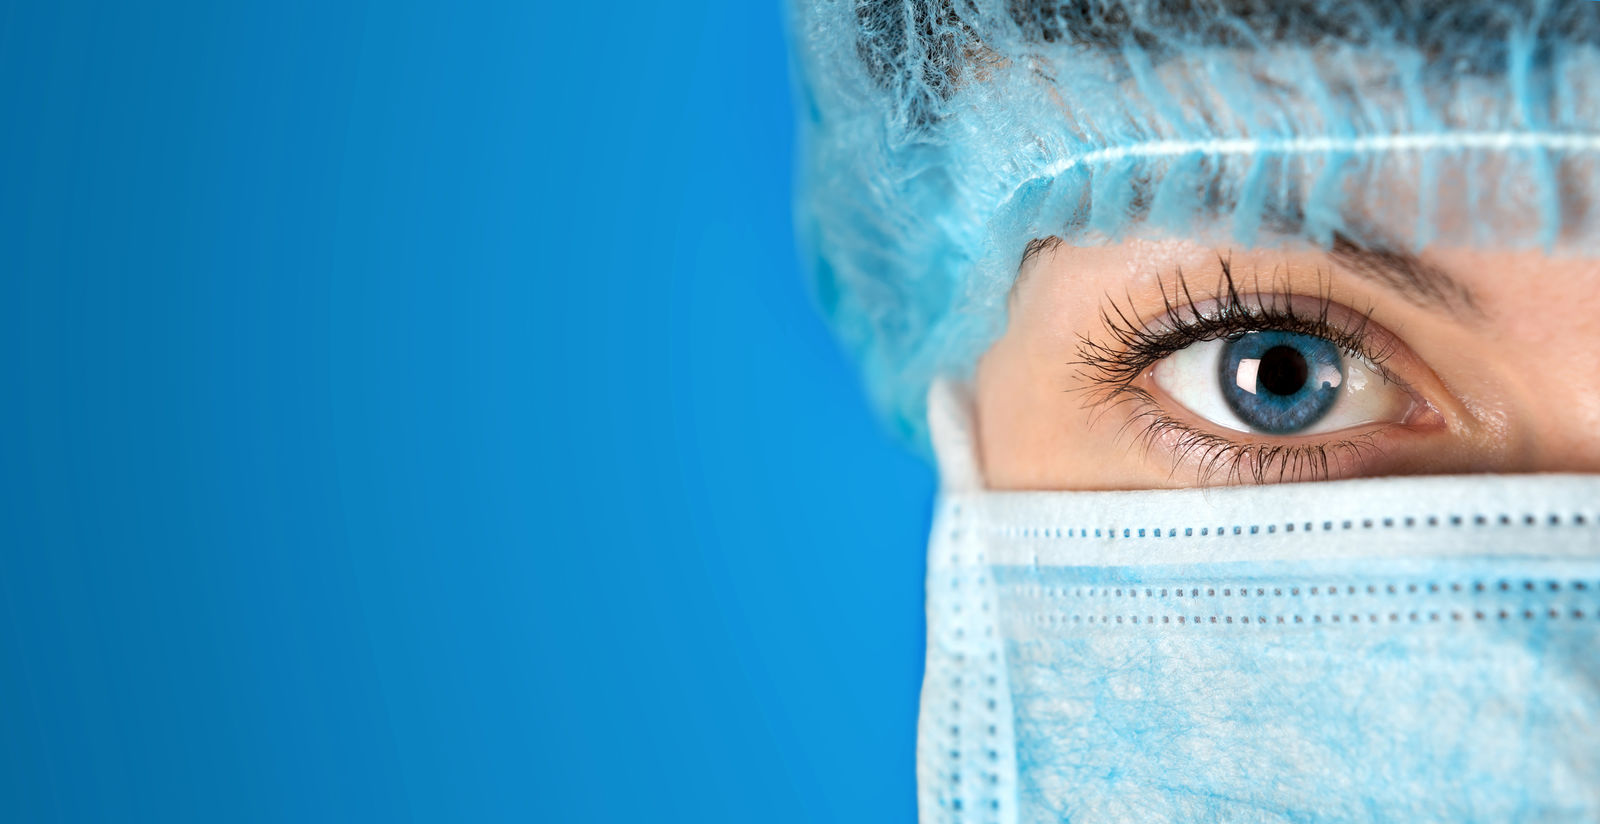 Woman in surgical mask.